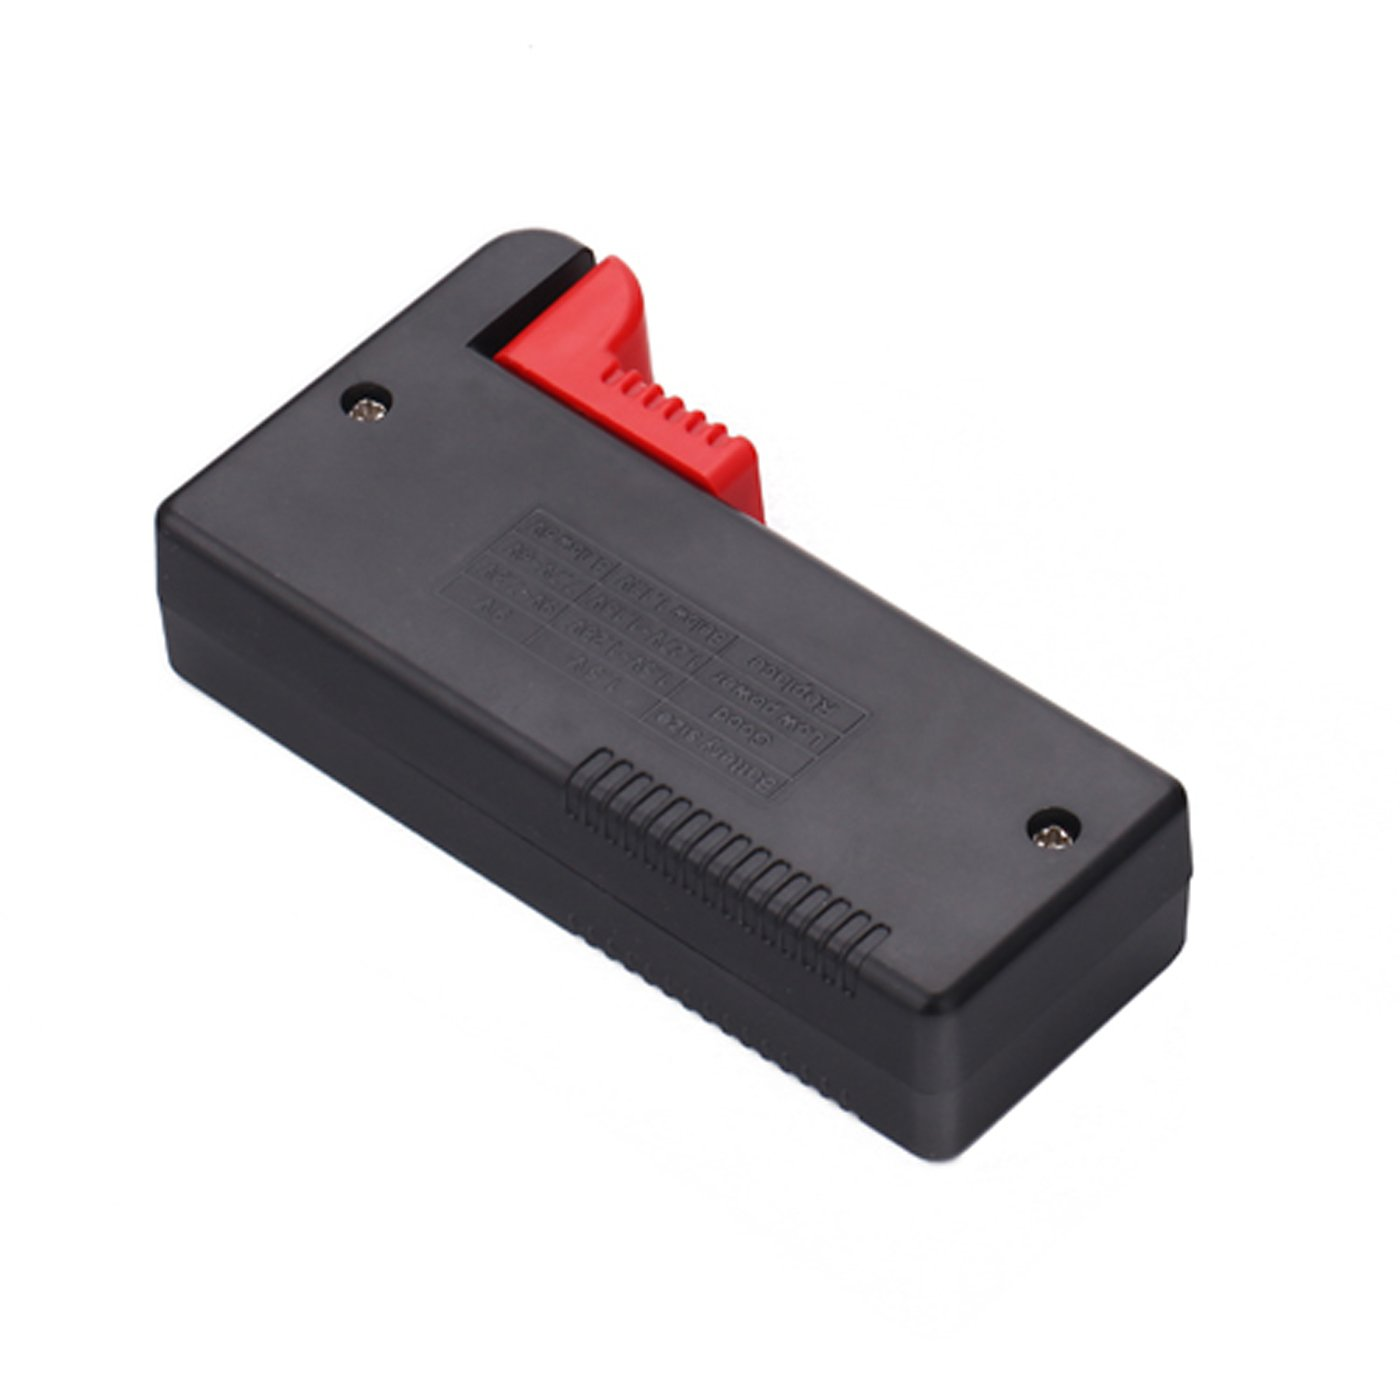 Hde Universal Battery Tester For Aa Aaa C D 9v Mini Cell Digital Multimeter Electrical Circuit Ebay Batteries Business Industry Science